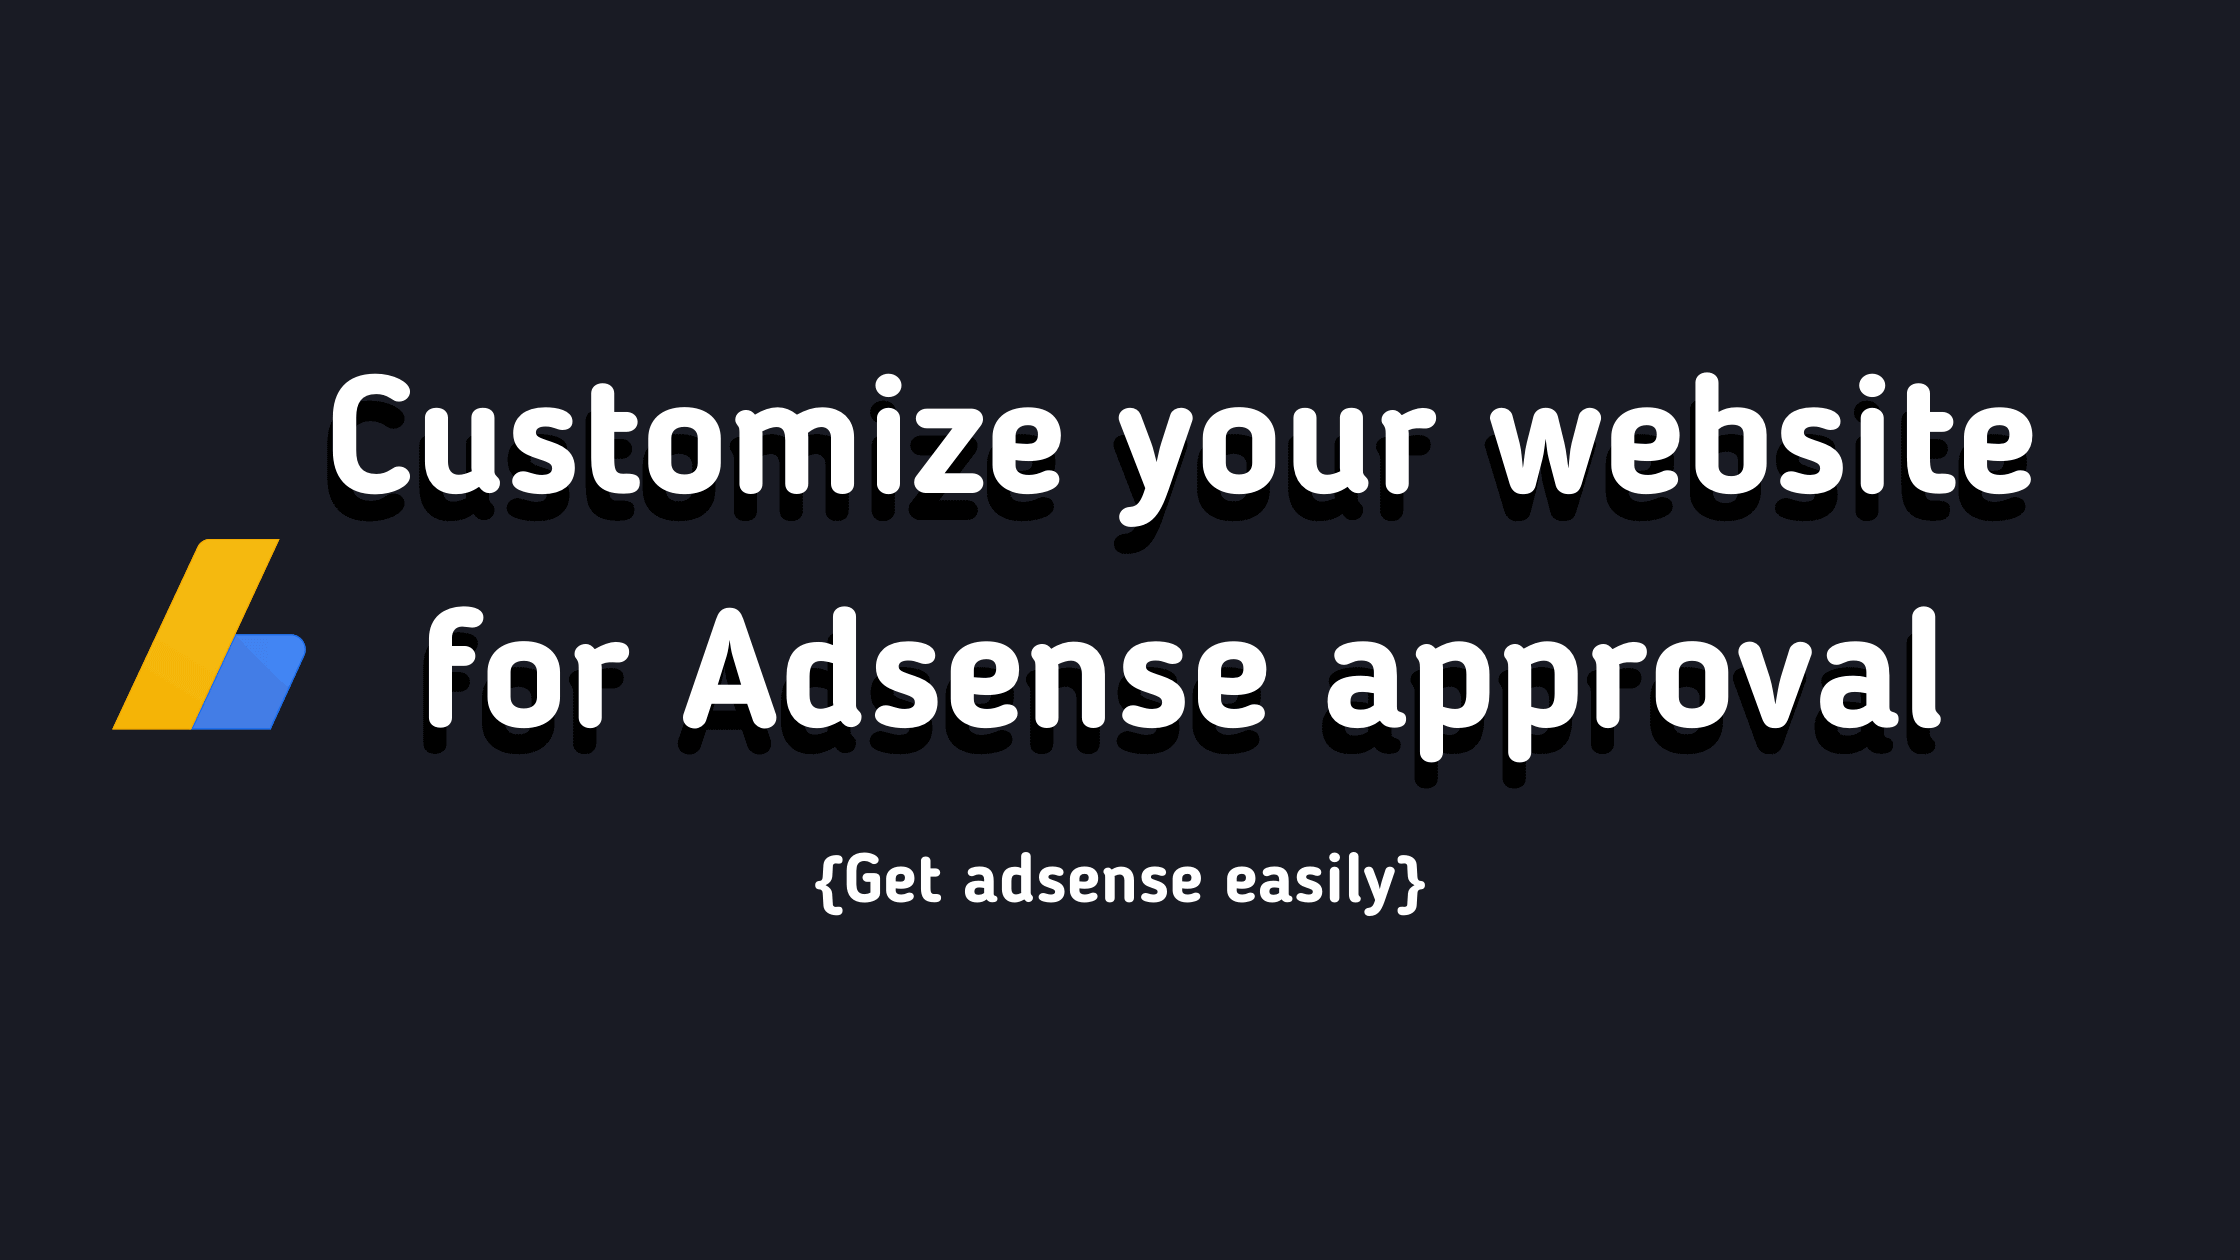 Get adsense Approval easily